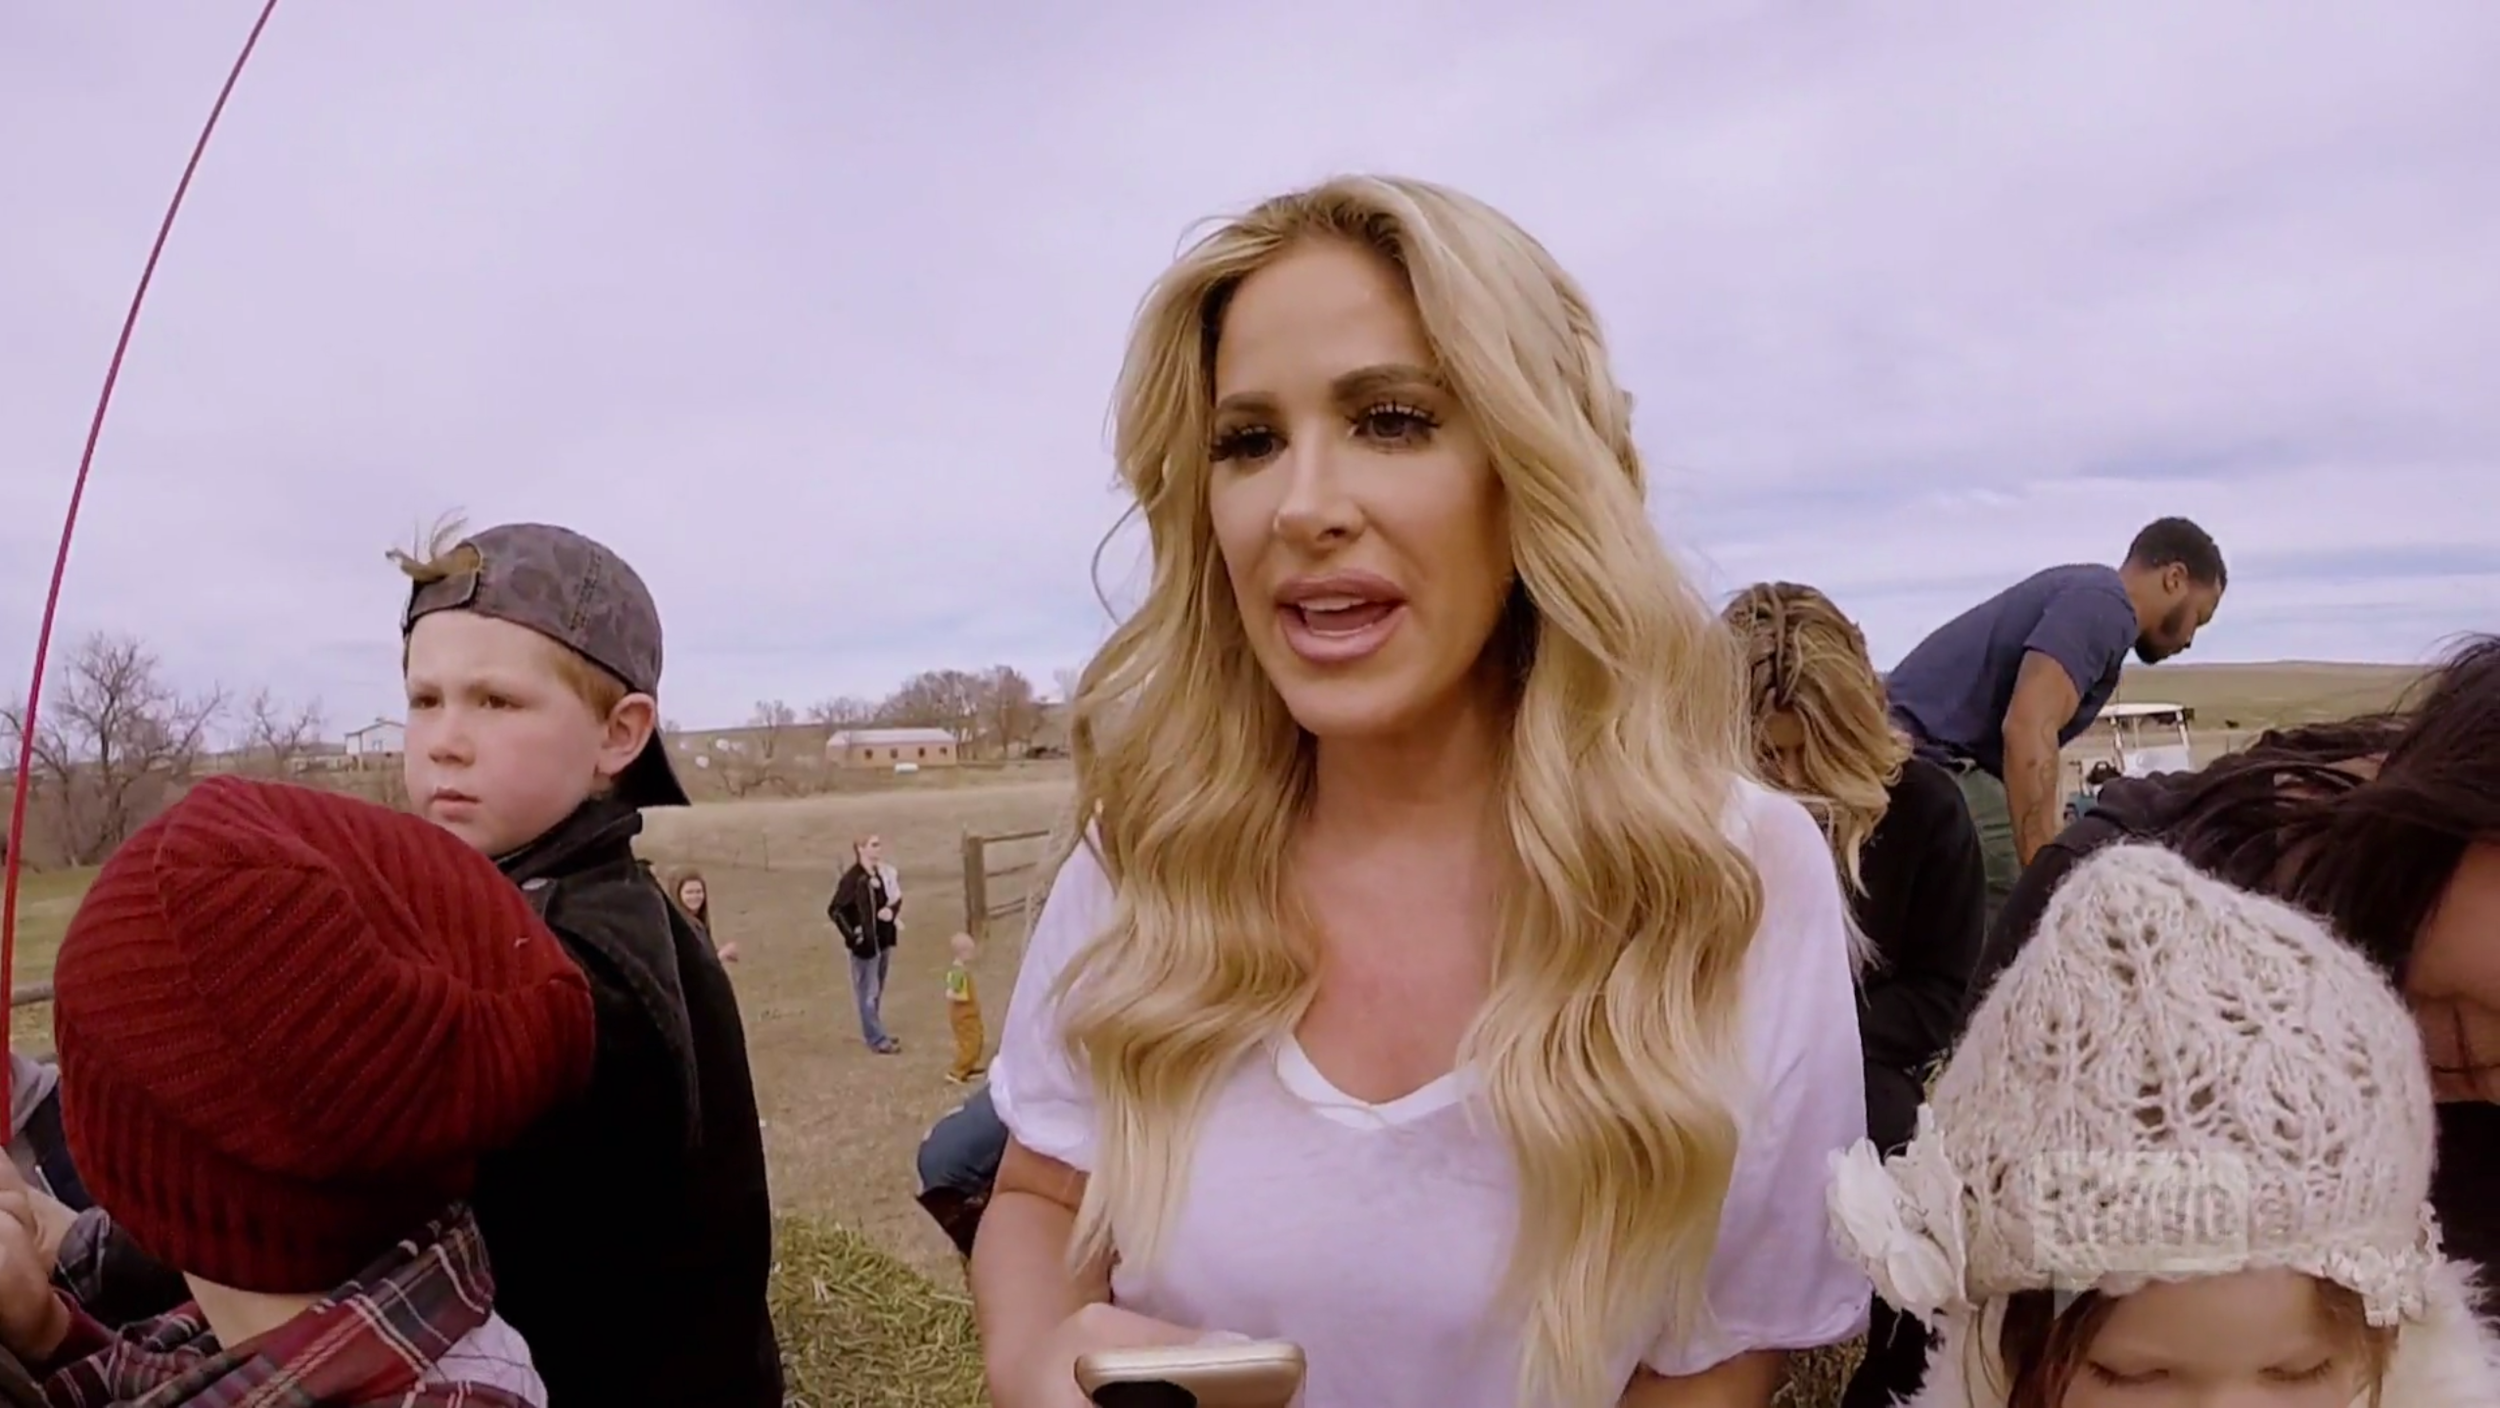 kim-zolciak-biermann